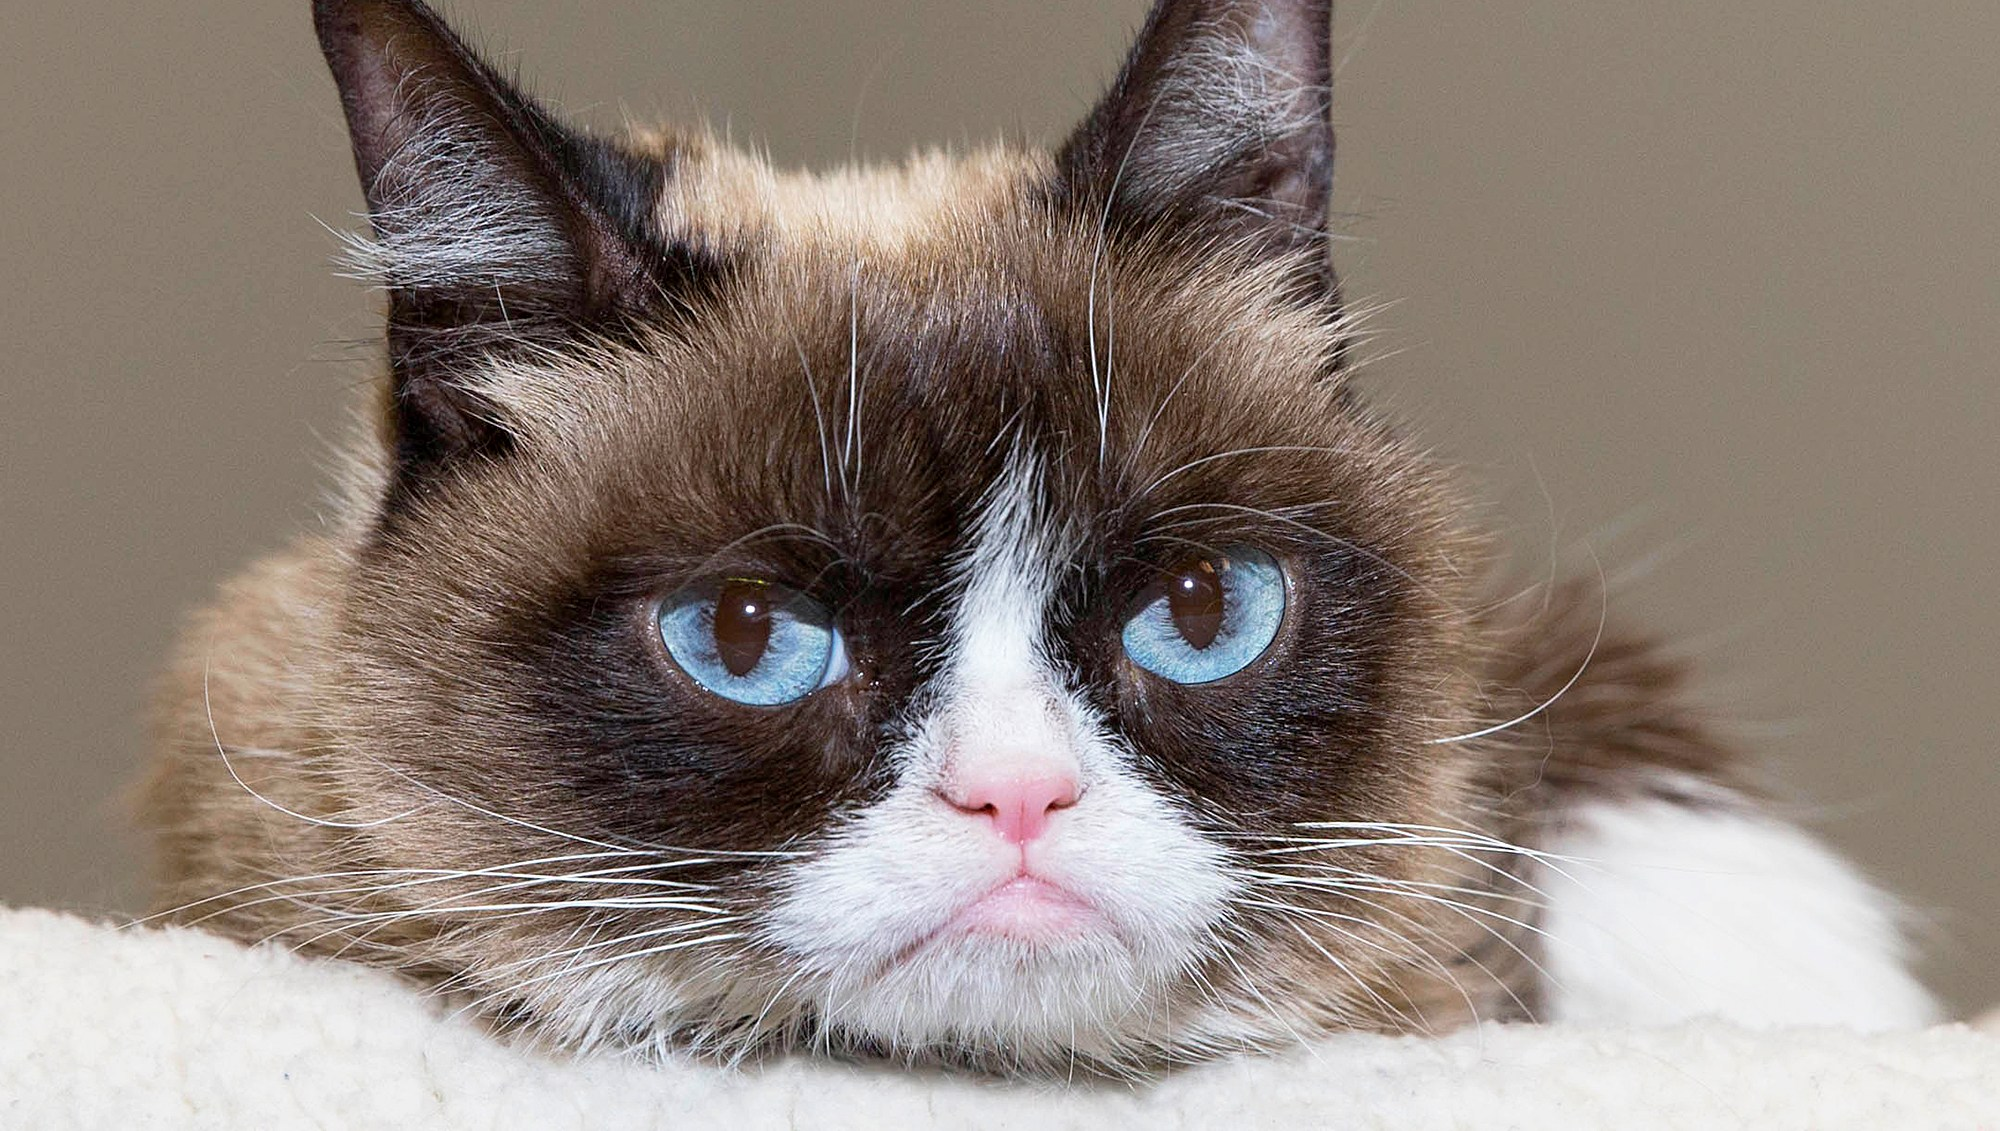 Grumpy Cat attends SXSW 2016 in Austin, Texas.